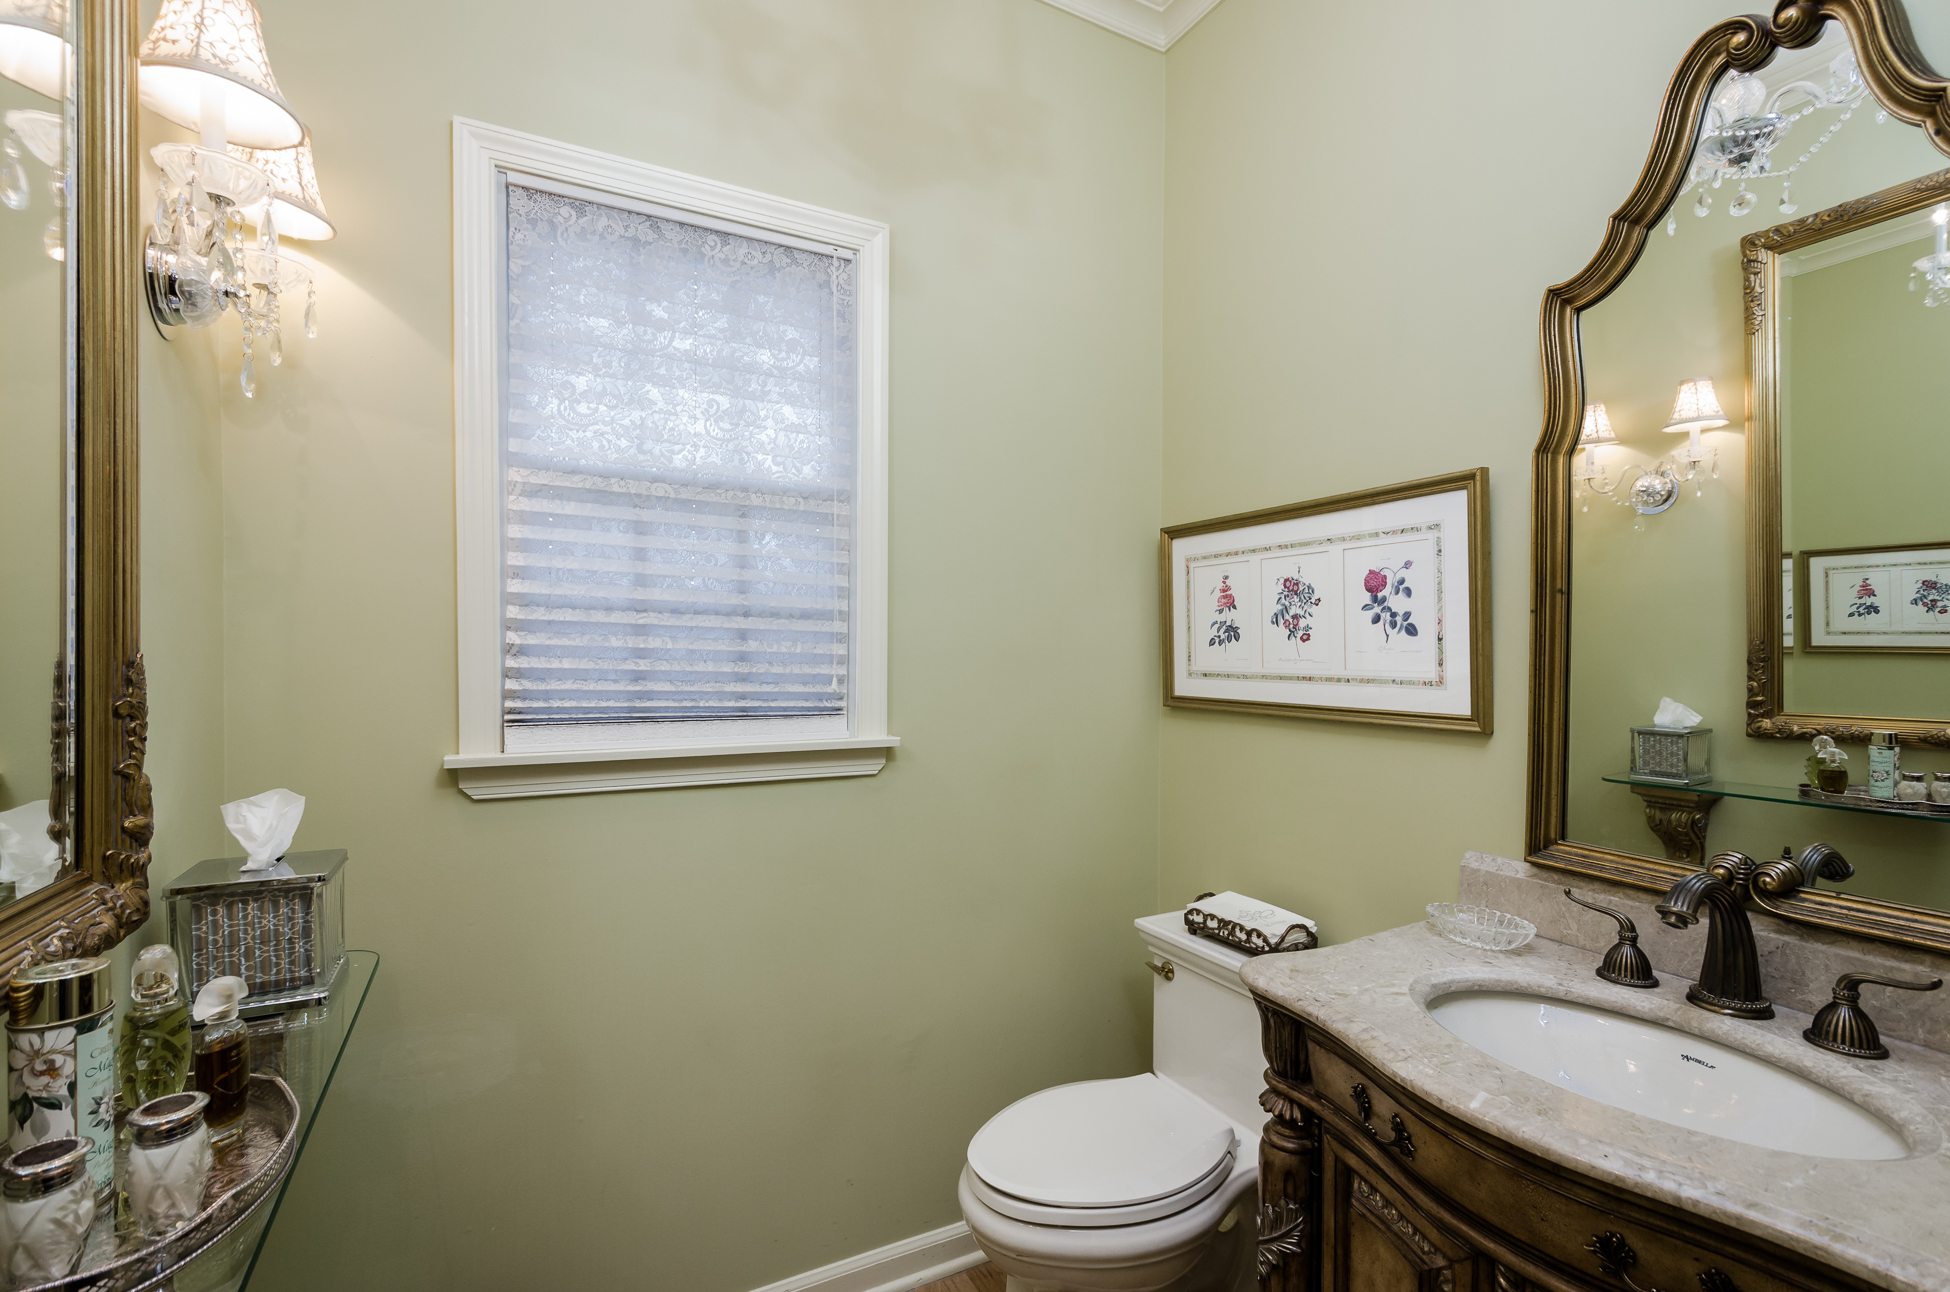 Additional photo for property listing at Inspired Elegance - Montgomery Township 10 Banyan Road Skillman, Нью-Джерси 08558 Соединенные Штаты